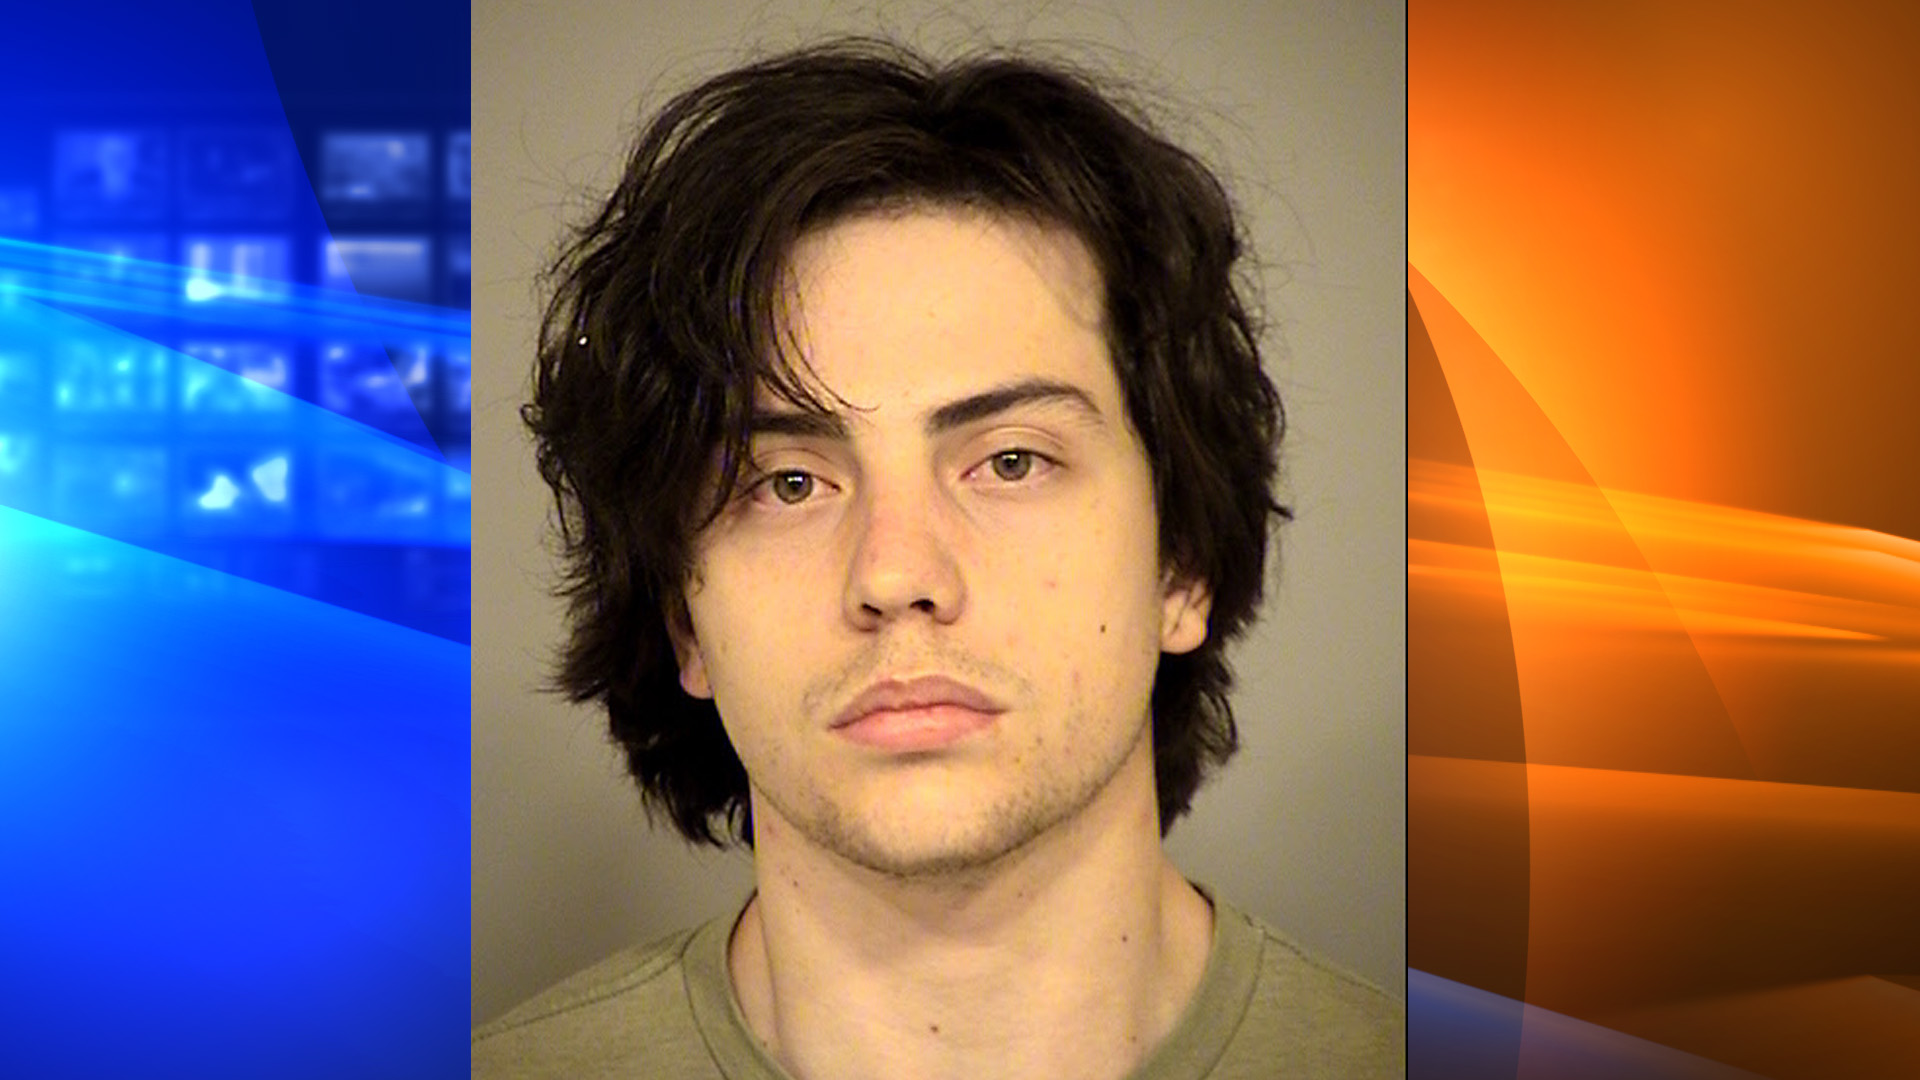 Donovan Ruiz is seen in a booking photo provided by the Ventura County Sheriff's Department on Sept. 28, 2018.